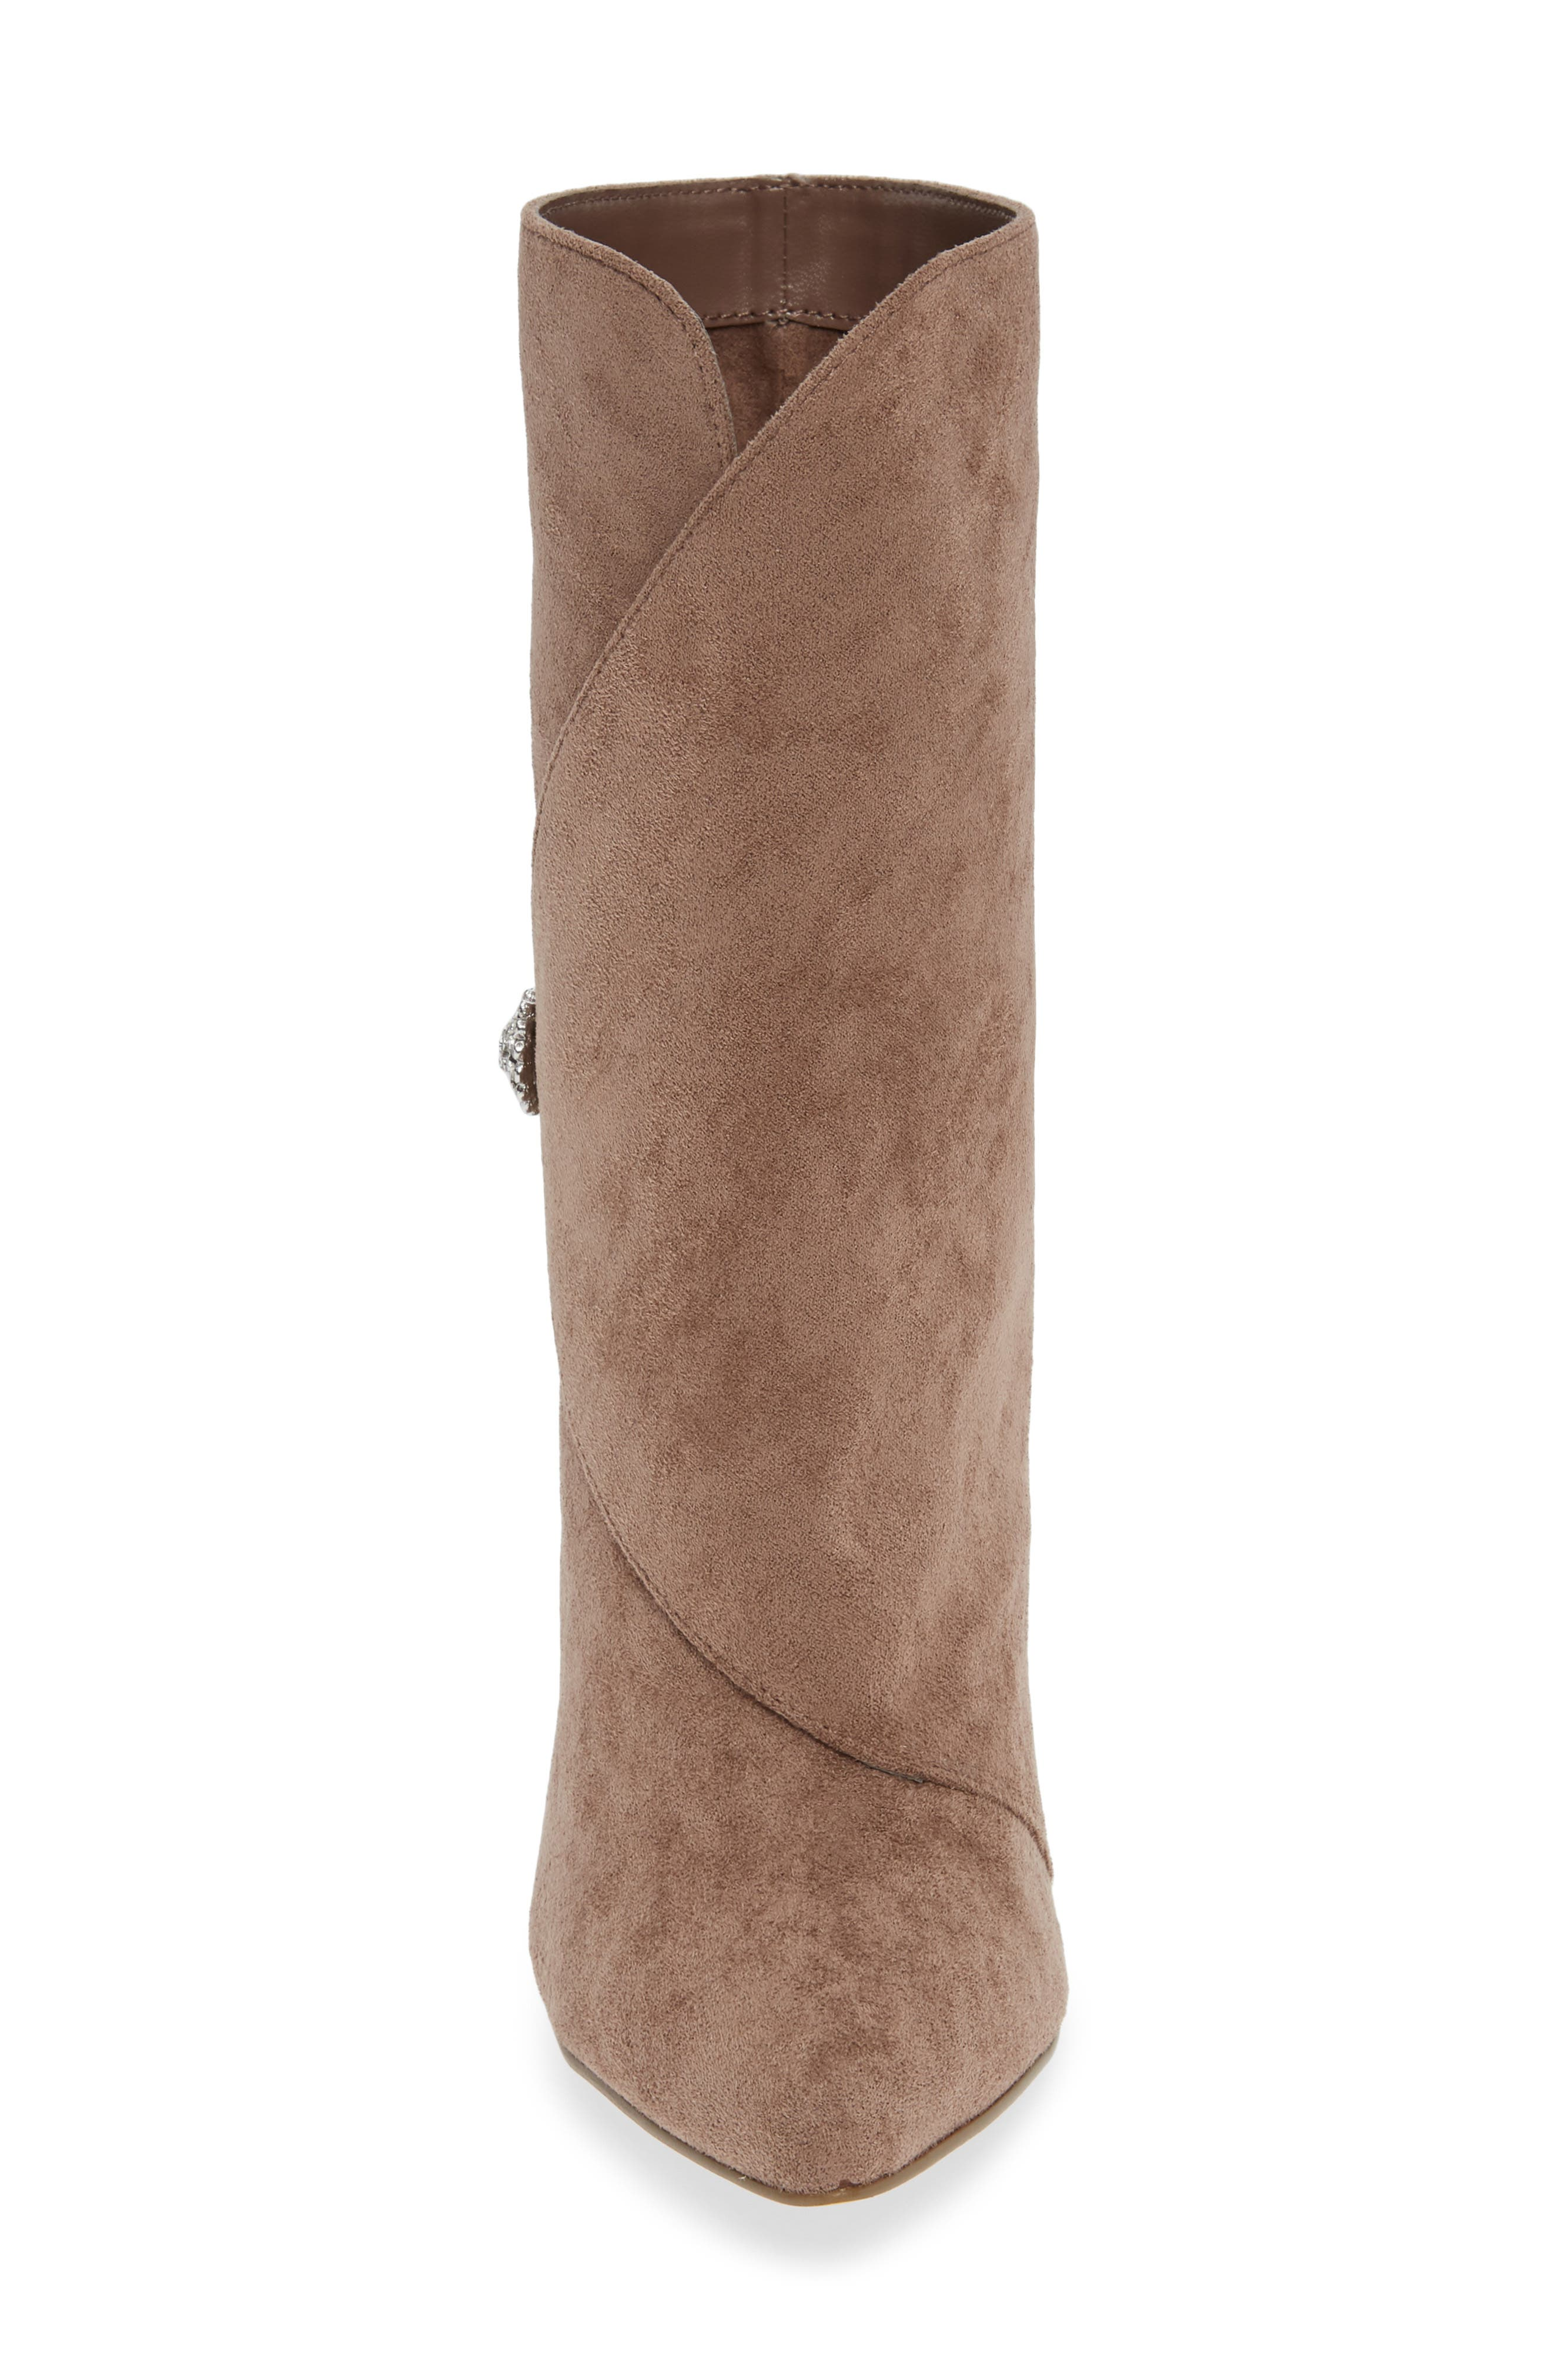 CHARLES BY CHARLES DAVID, Pistol Crystal Embellished Pointy Toe Bootie, Alternate thumbnail 4, color, TAUPE SUEDE